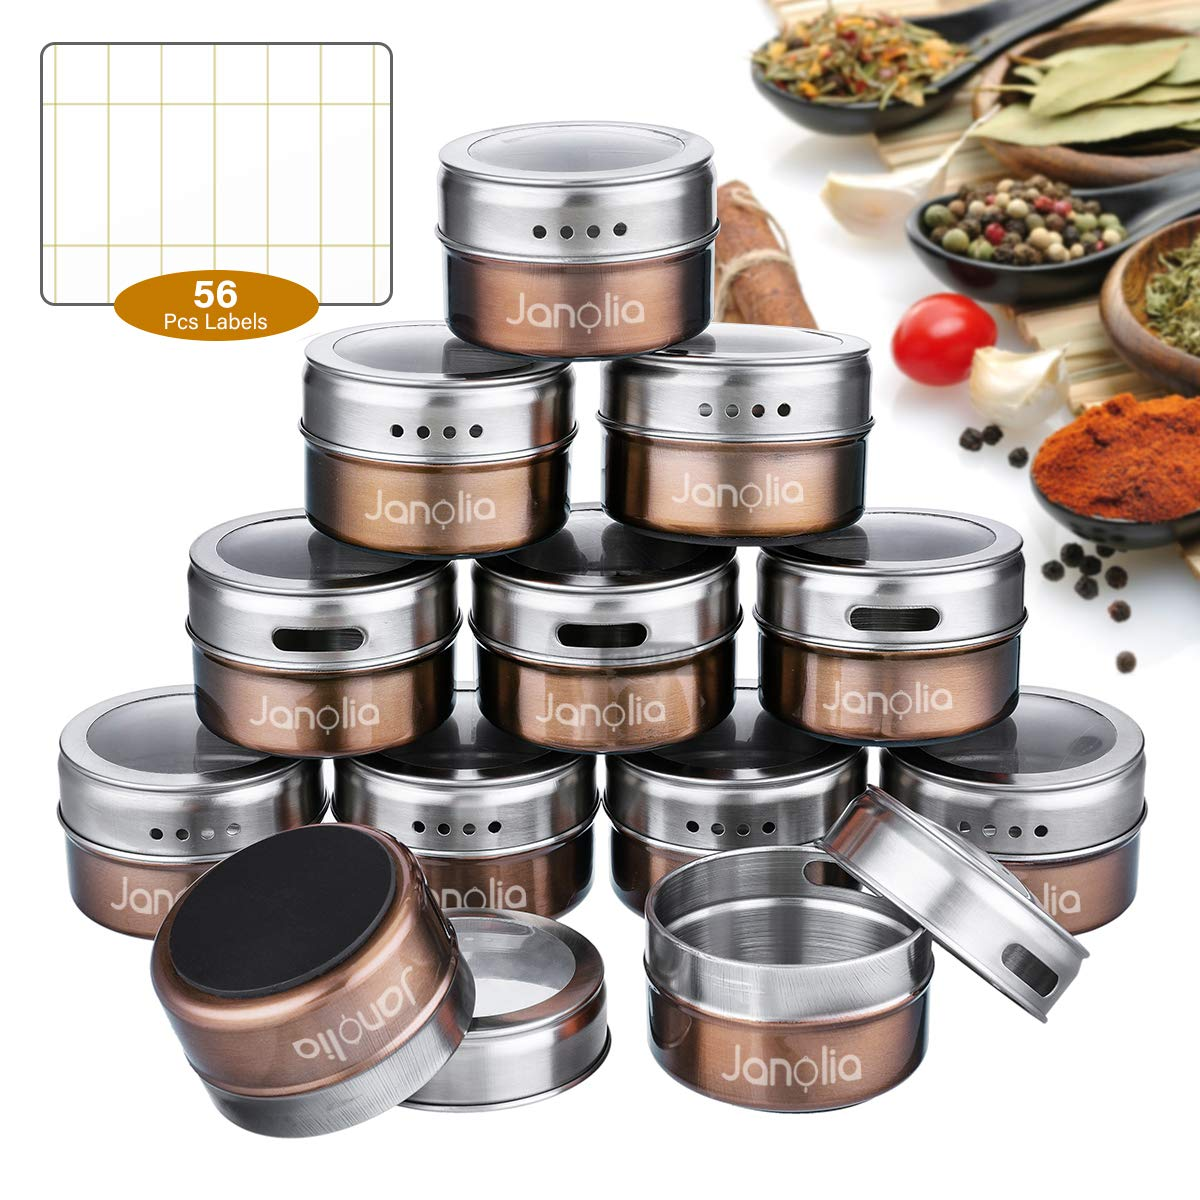 Set of 12 Stainless Steel Magnetic Spice Containers Janolia Spice Jars Round Spice Bottles with Twist Top for Salt Pepper Brown with See-through Screen